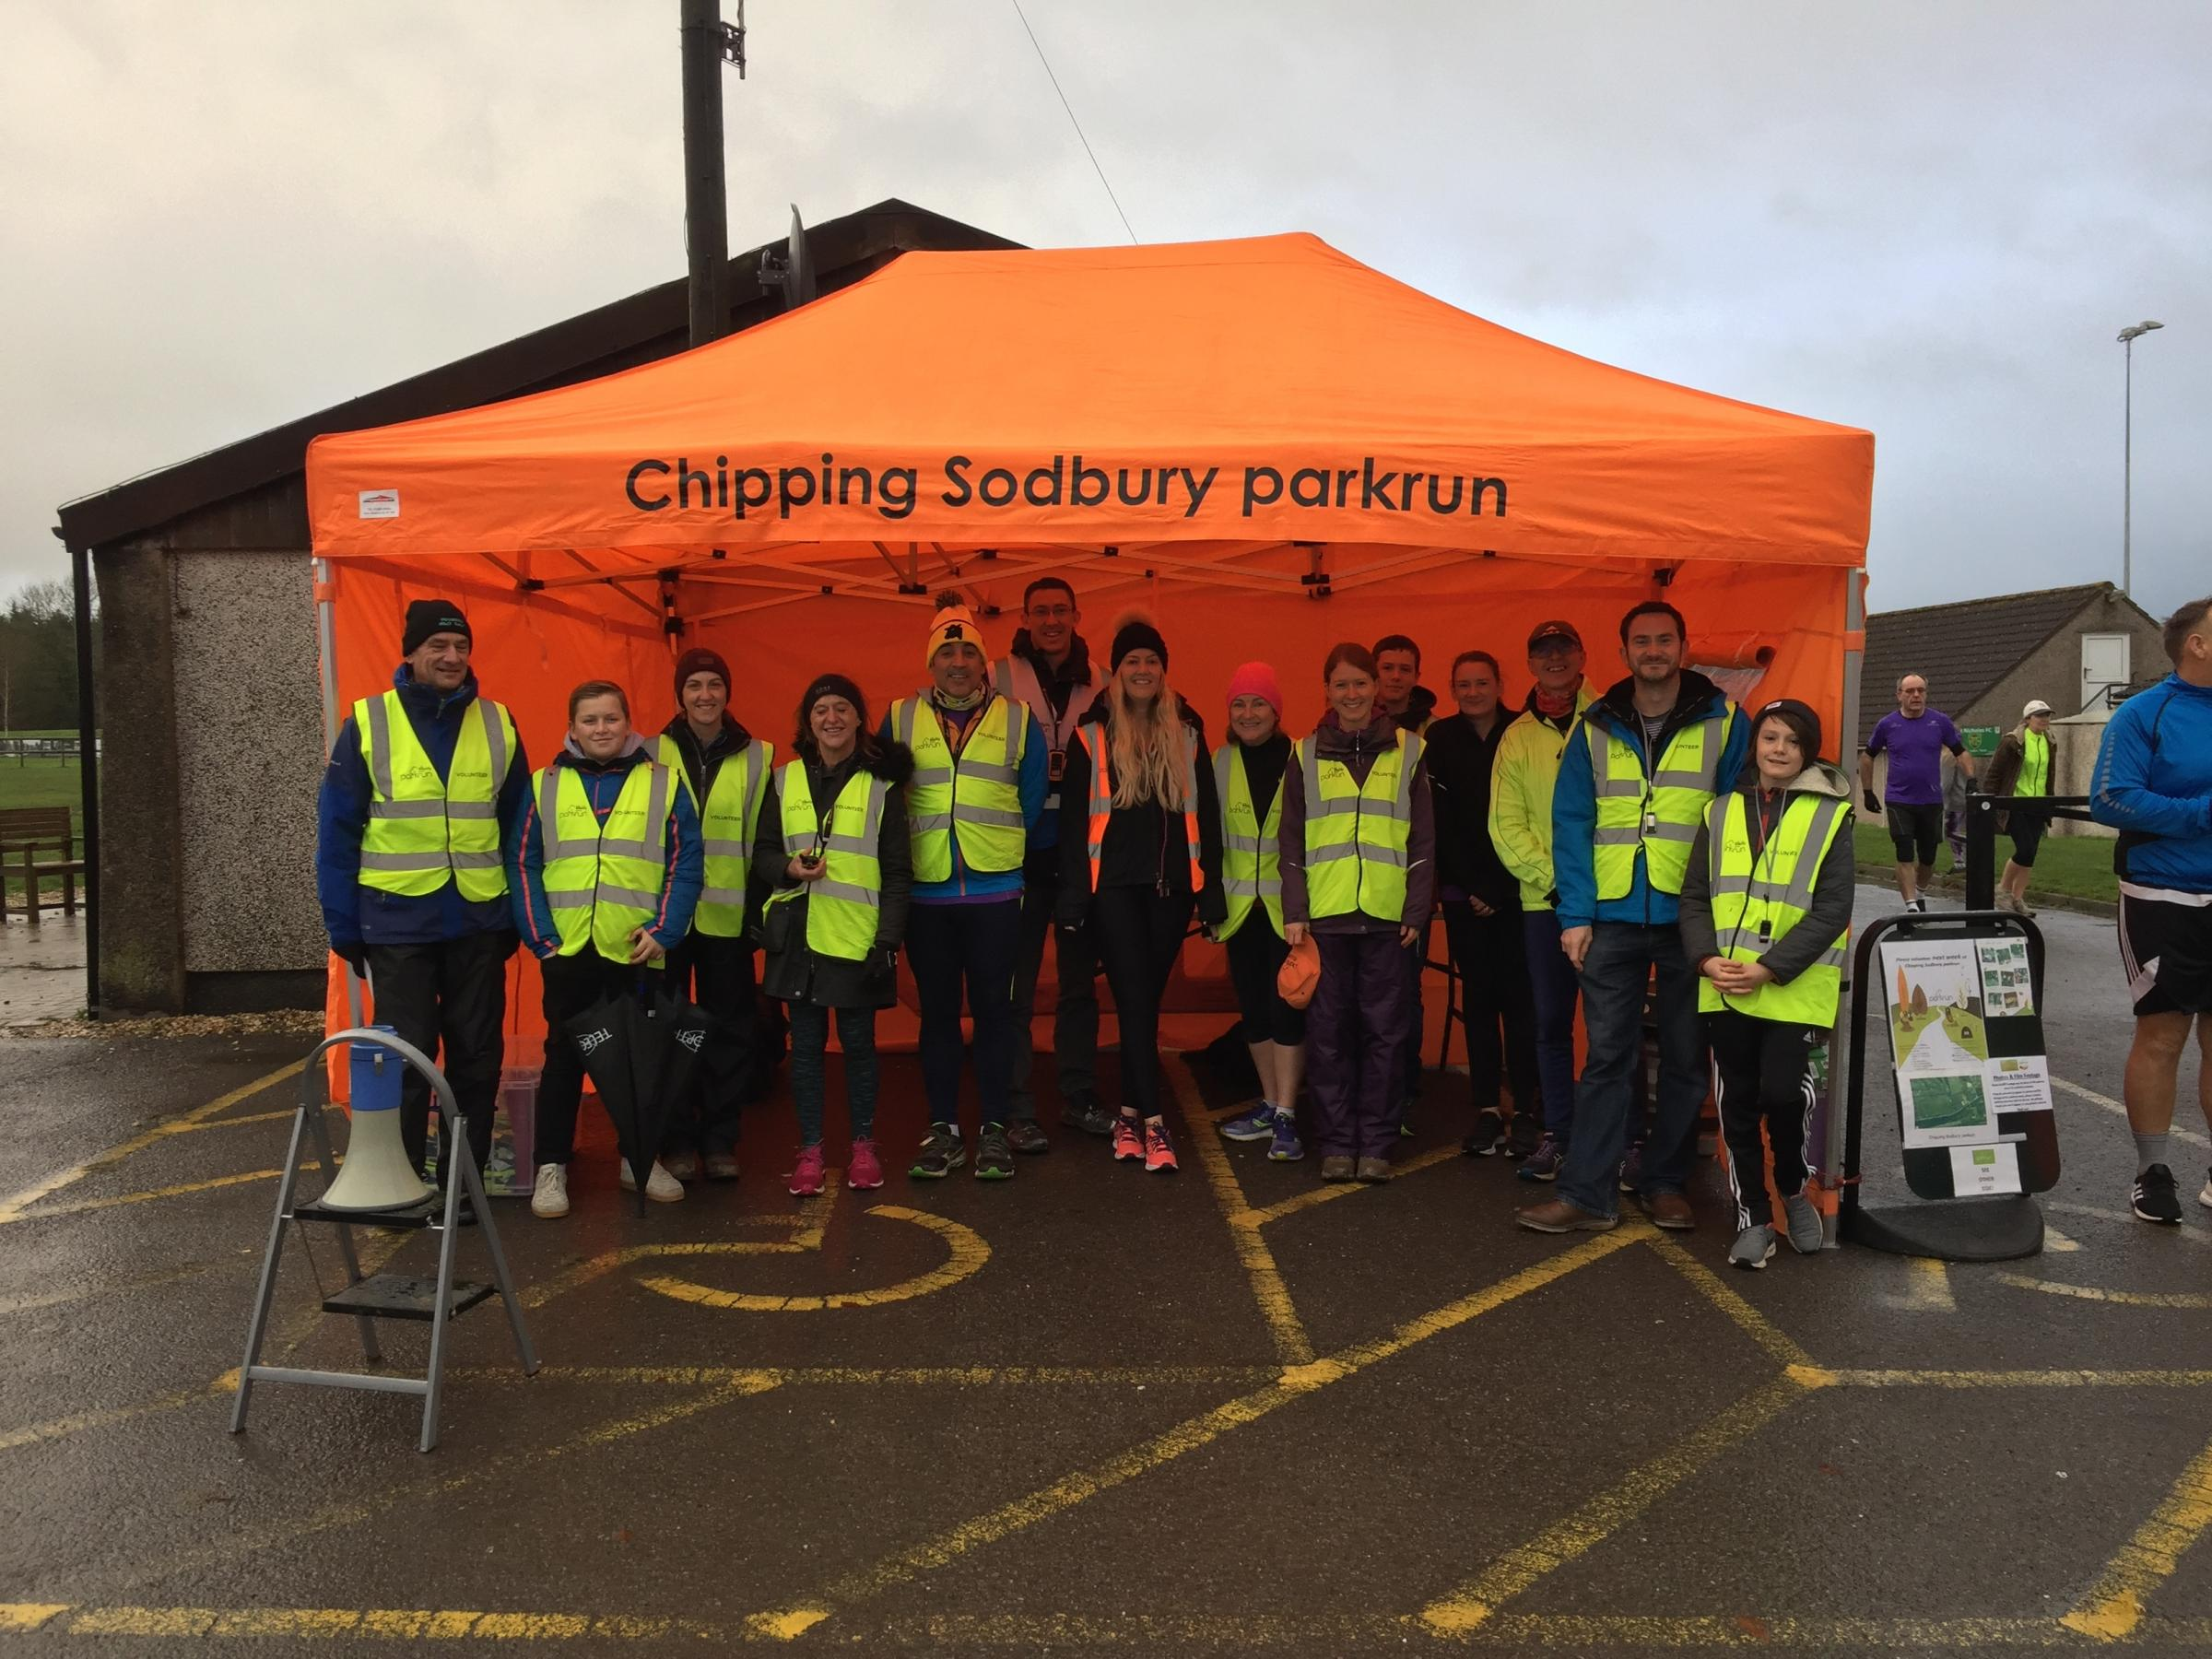 Chipping Sodbury Parkrun organisers with their new gazebo